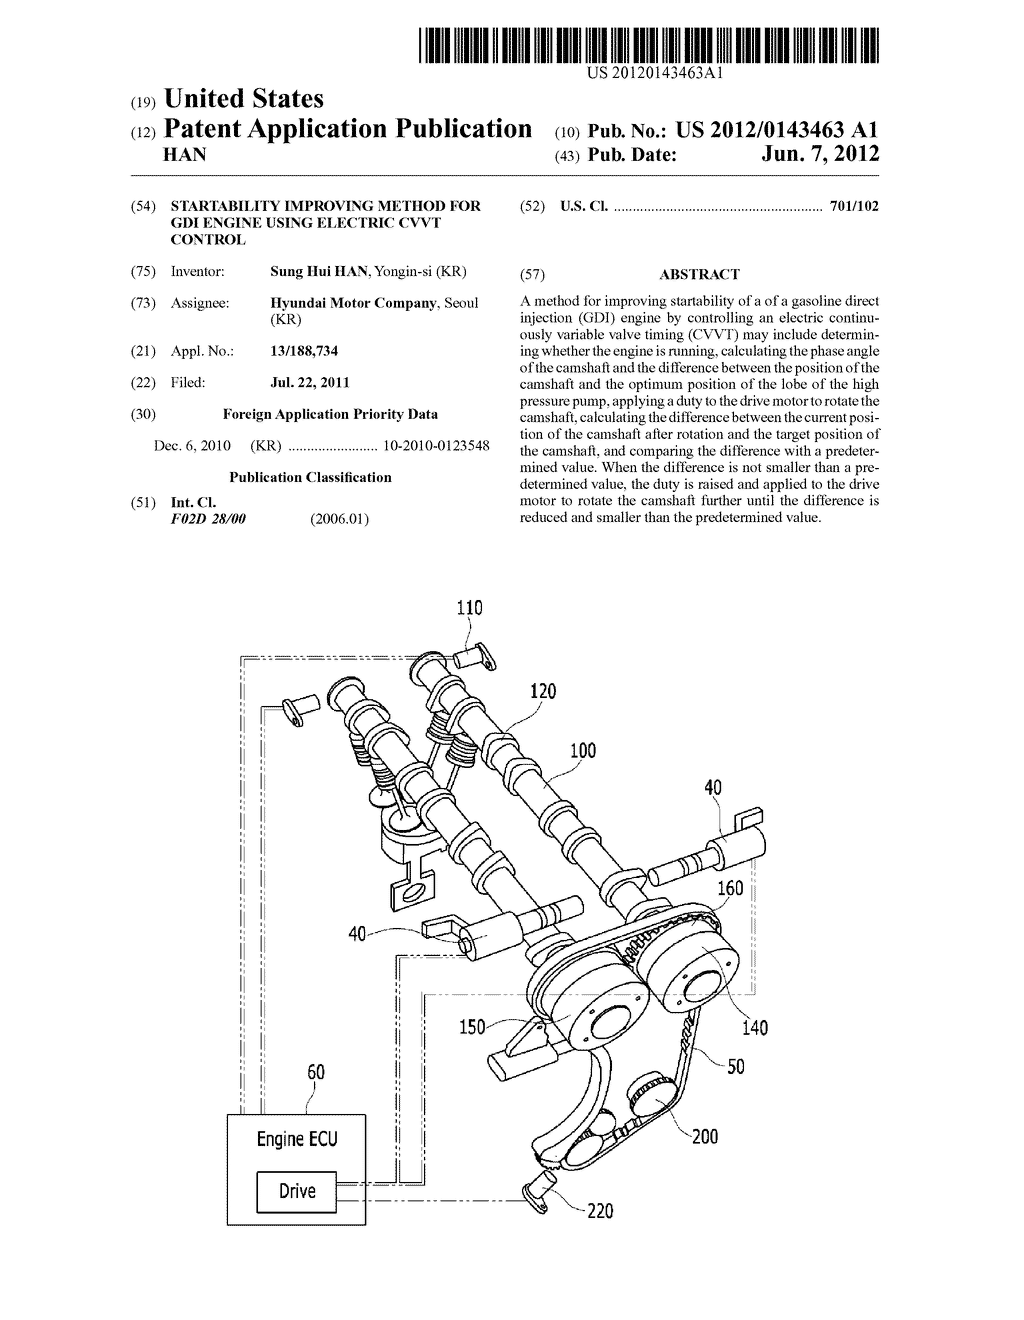 hight resolution of startability improving method for gdi engine using electric cvvt control diagram schematic and image 01